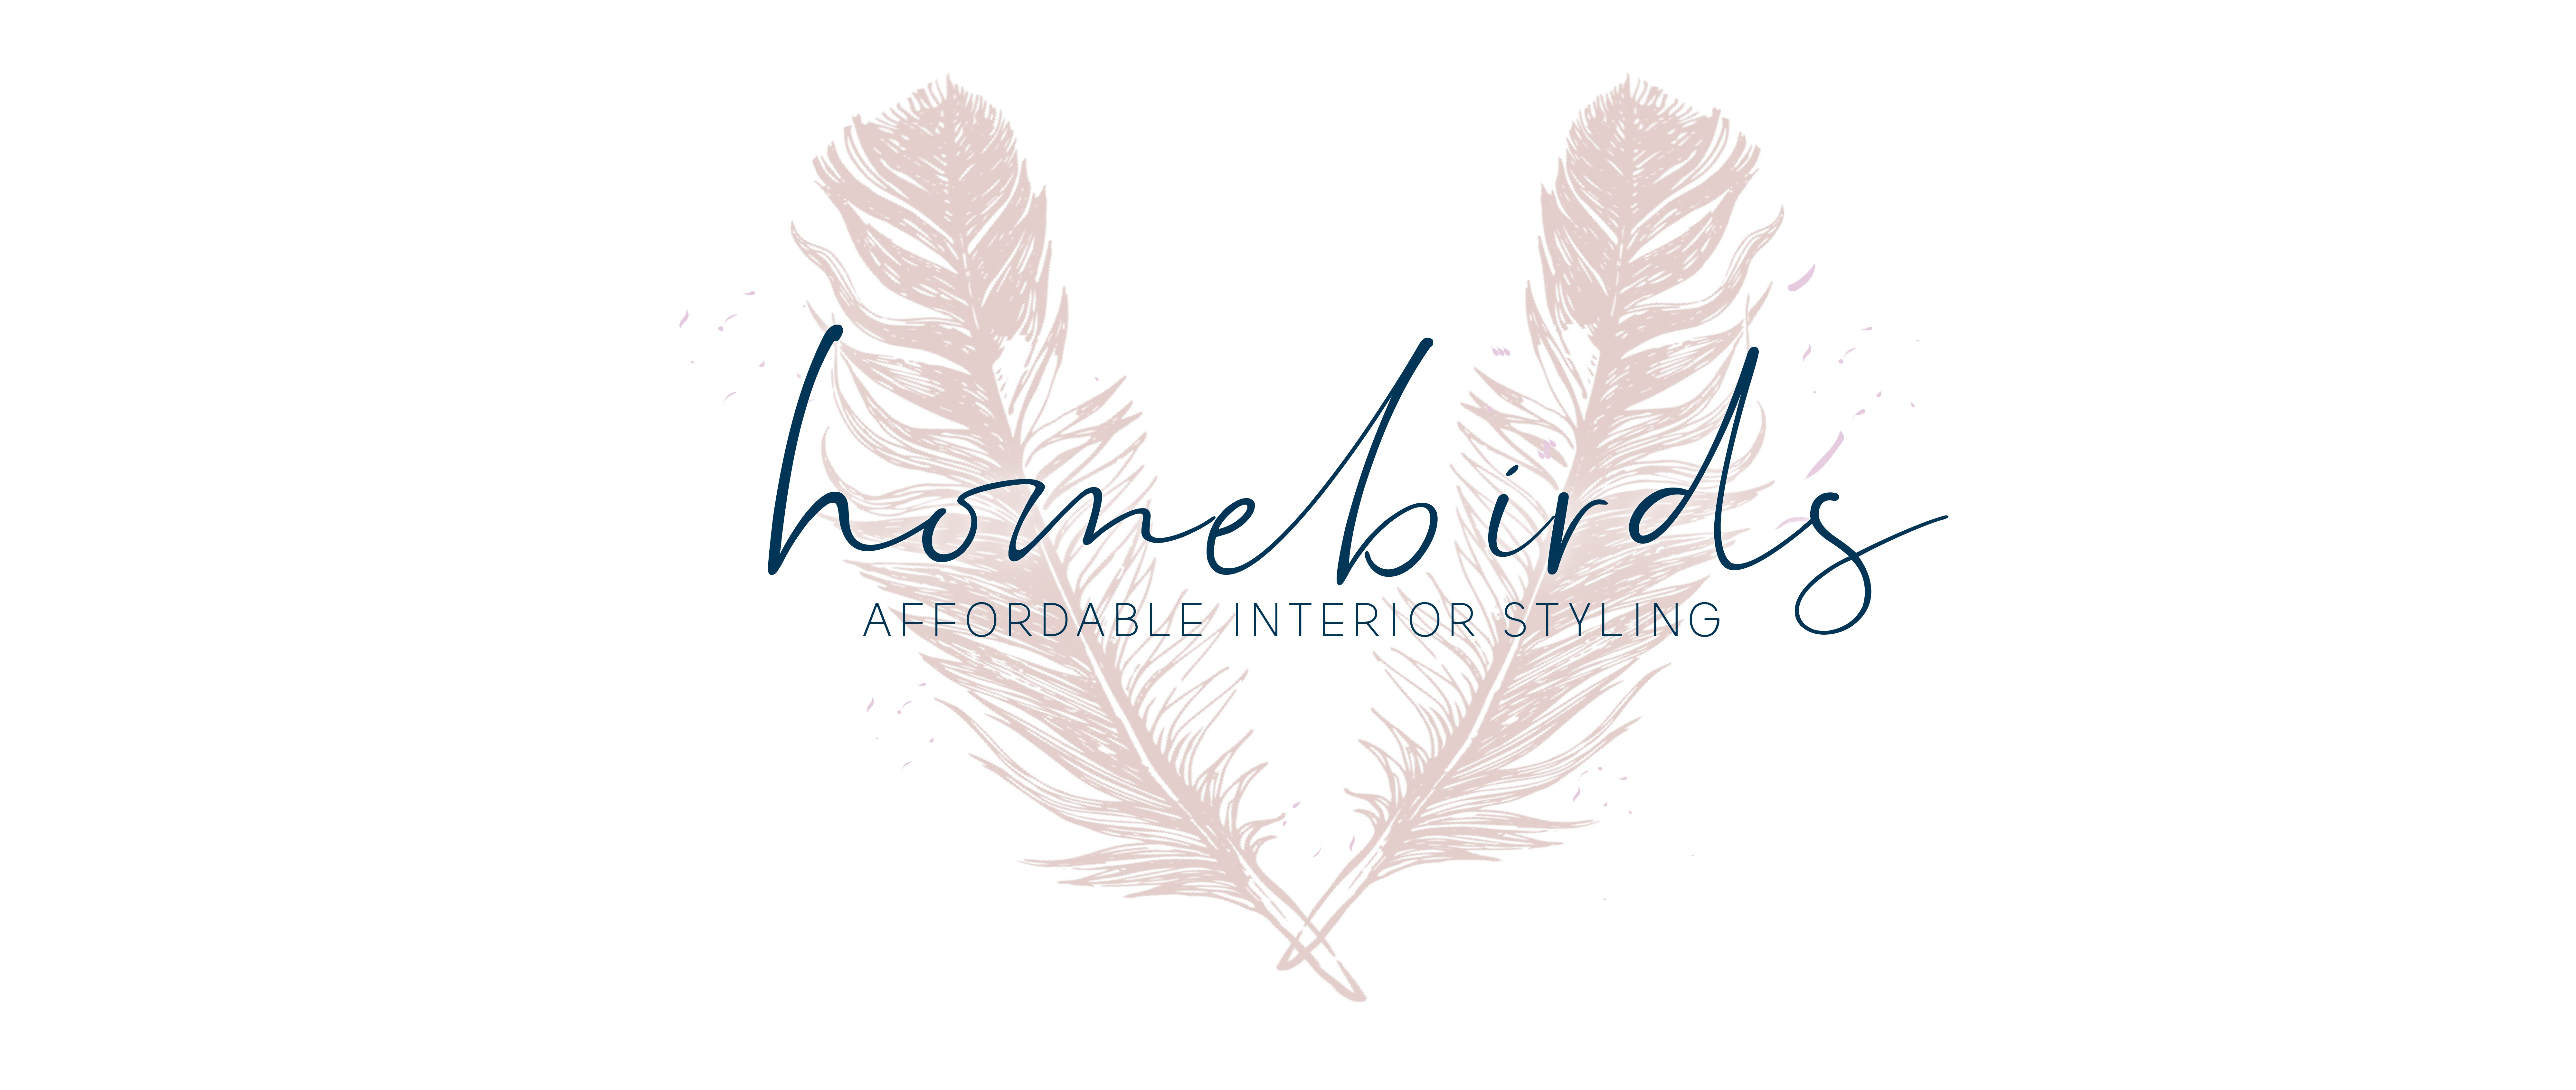 homebirds.org.uk